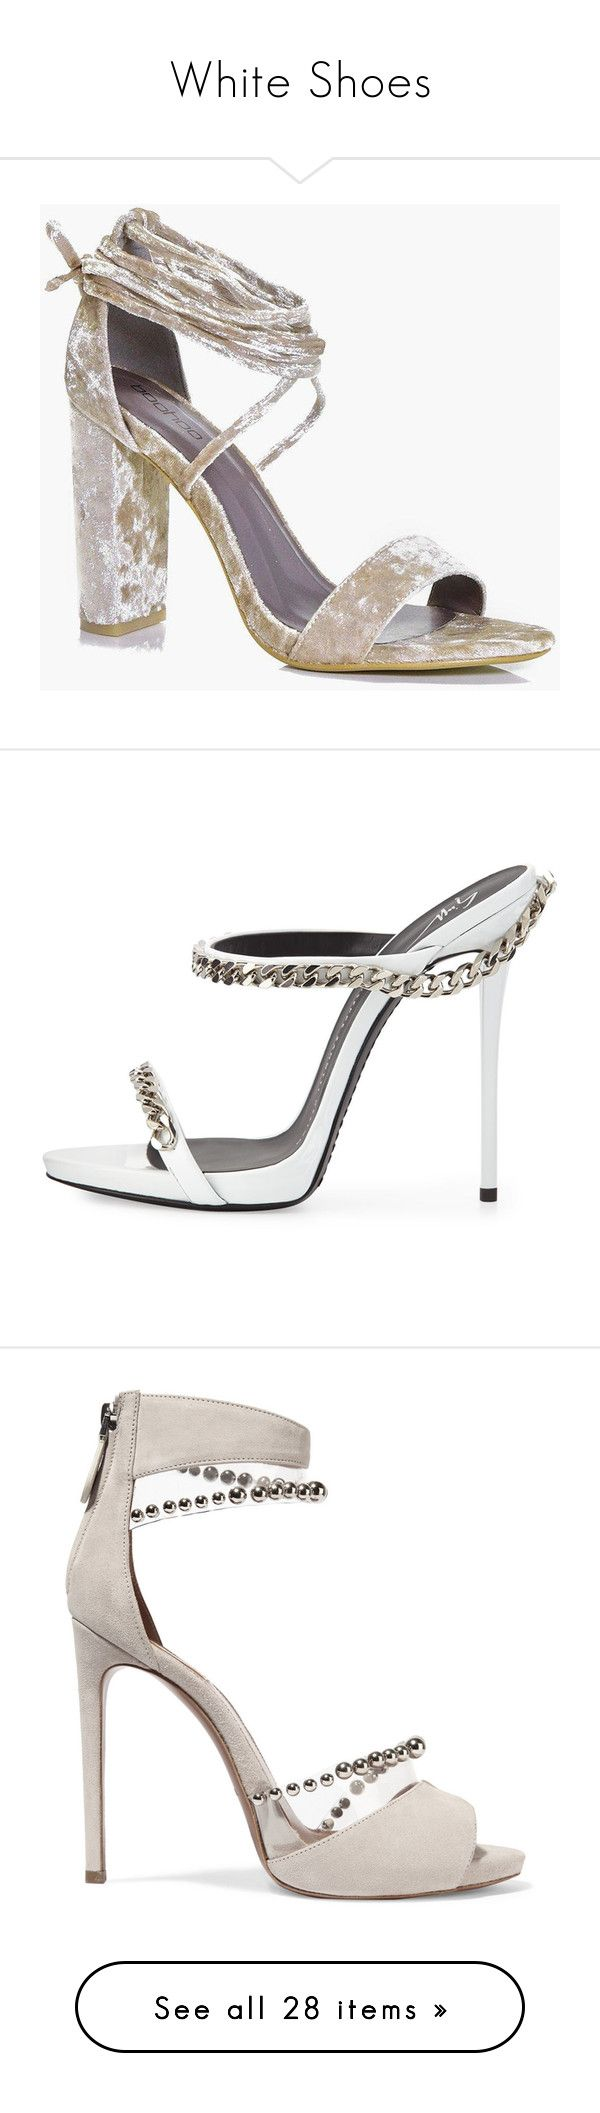 """""""White Shoes"""" by taliamariah-cirillo ❤ liked on Polyvore featuring shoes, sandals, cocktail shoes, floral shoes, evening sandals, evening shoes, flatform sandals, heels, strappy high heel sandals and high heel sandals"""